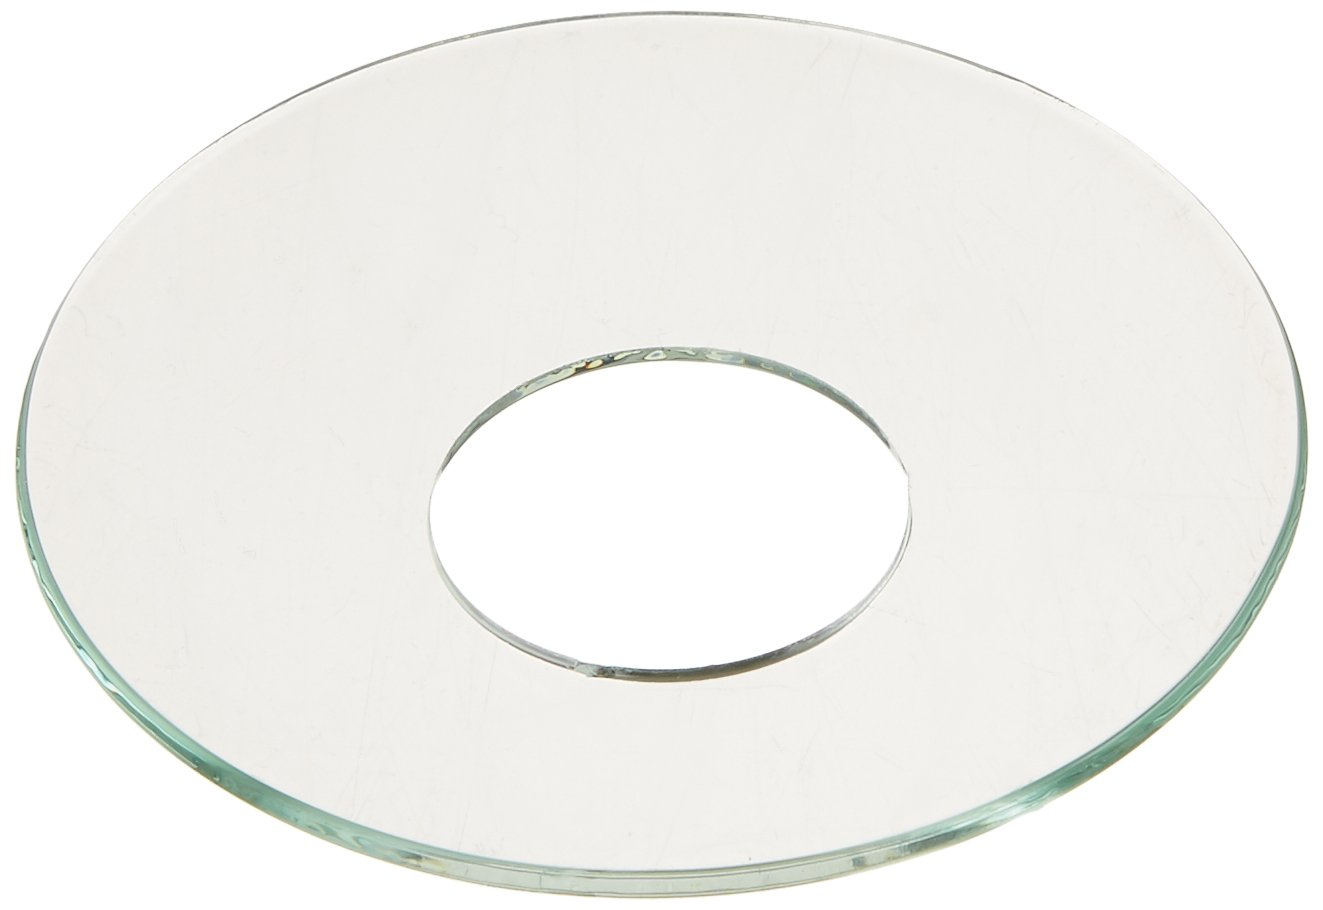 Biedermann & Sons Glass Bobeches 12-Count, Clear, Piece